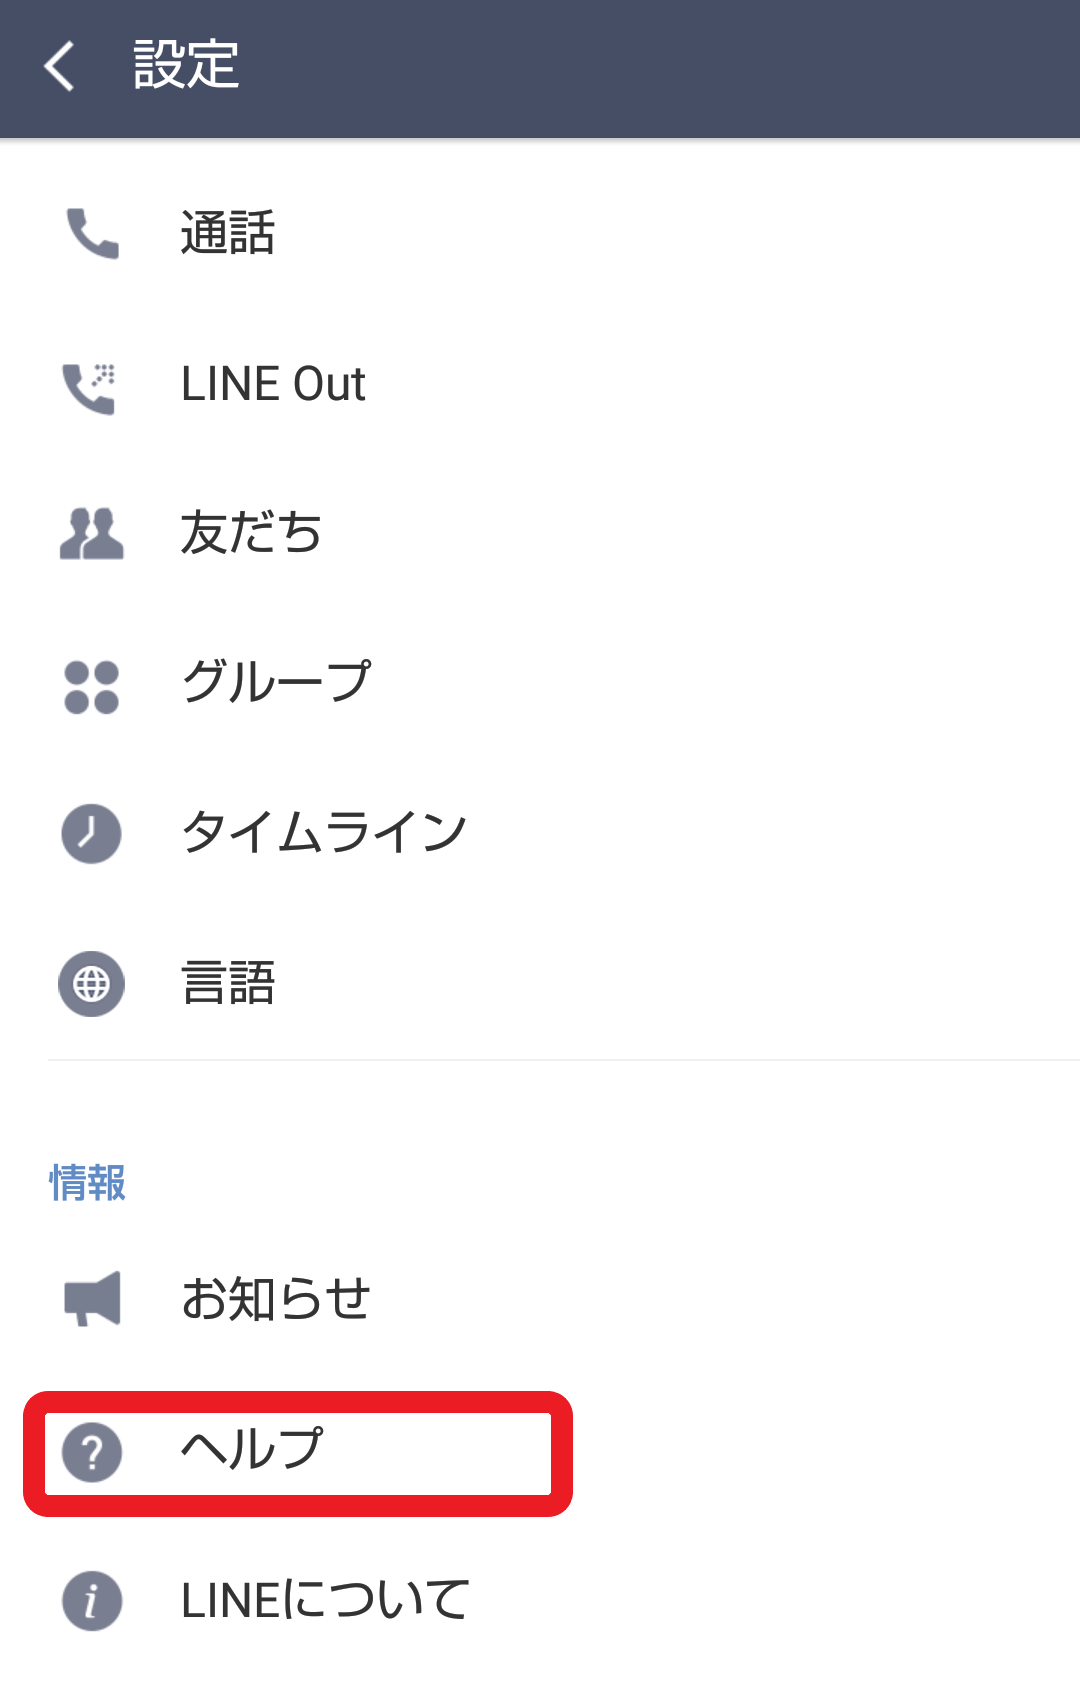 LINEヘルプ画面